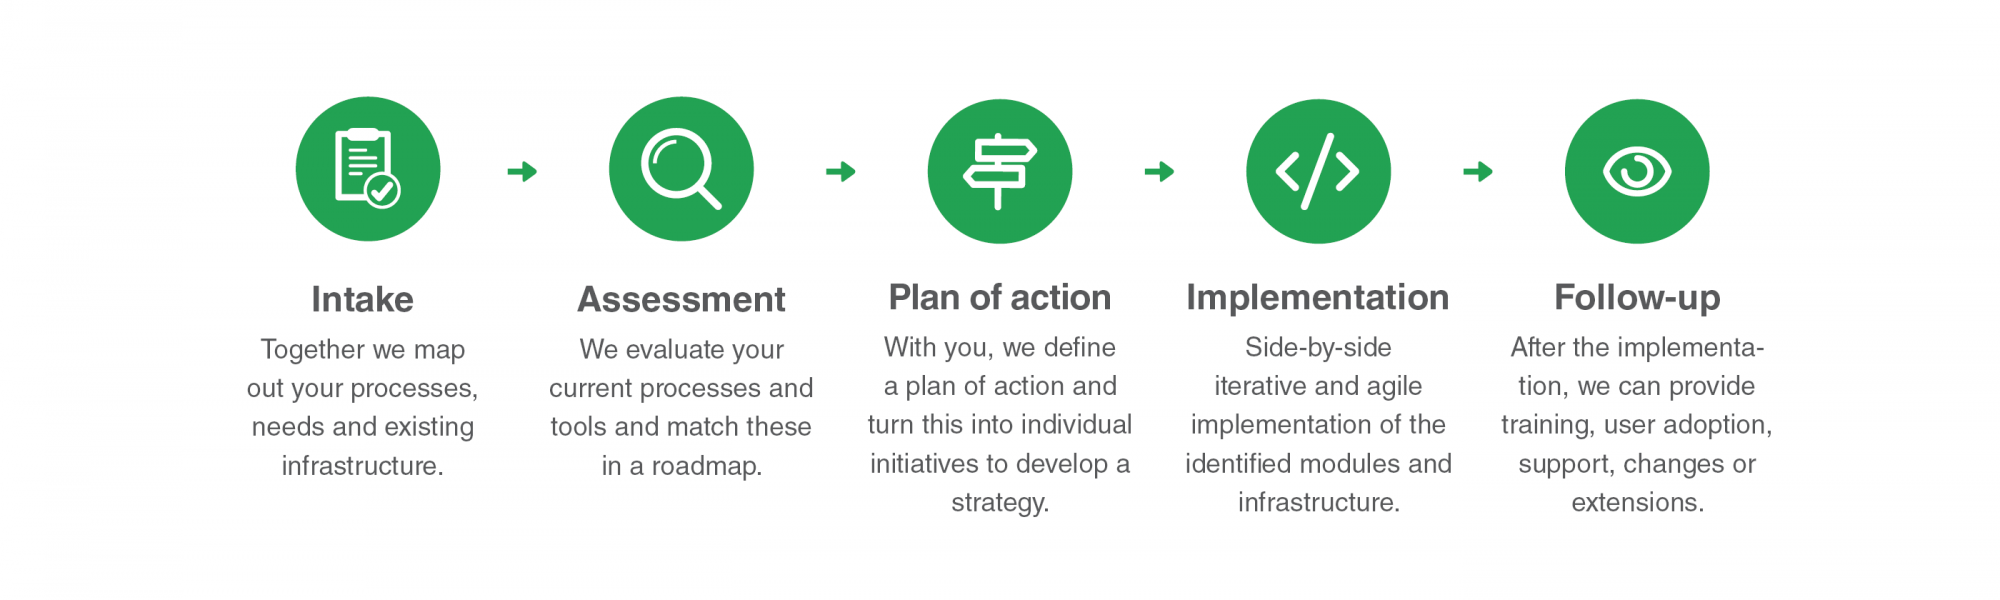 Healthcare Platform - plan of action